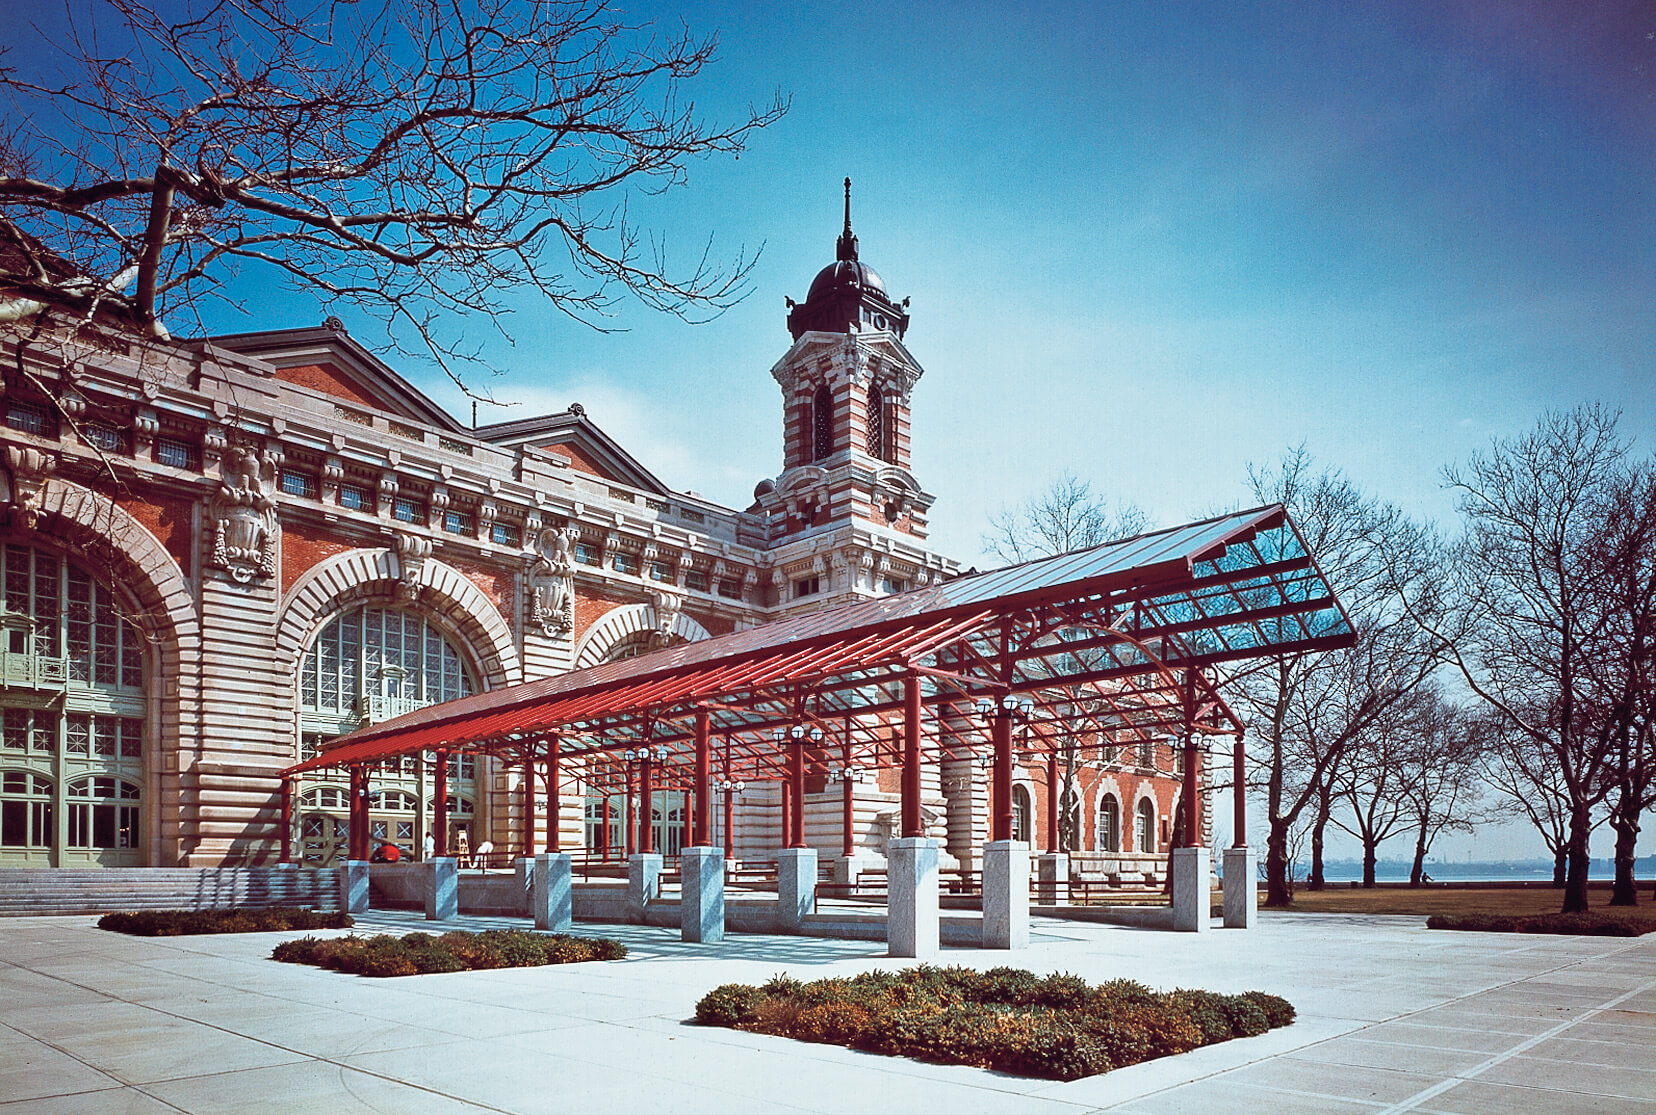 Entrance to Ellis Island museum with long perpendicular glass and steal overhang.